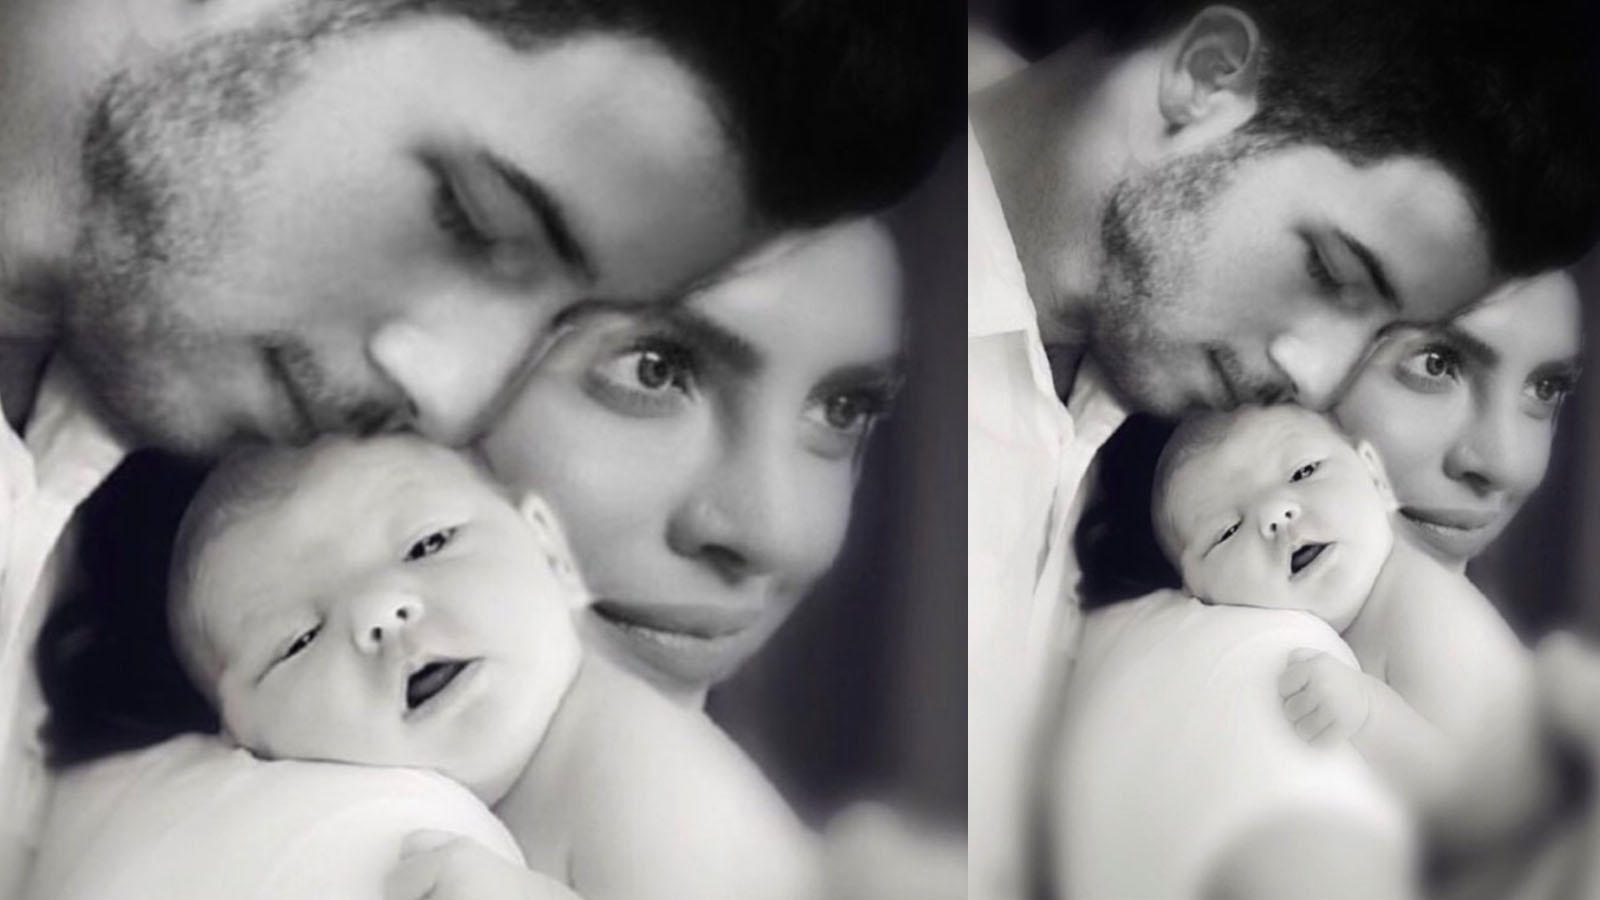 Fan wishes Priyanka Chopra and Nick Jonas on their wedding anniversary with a photoshopped pic of them holding a baby